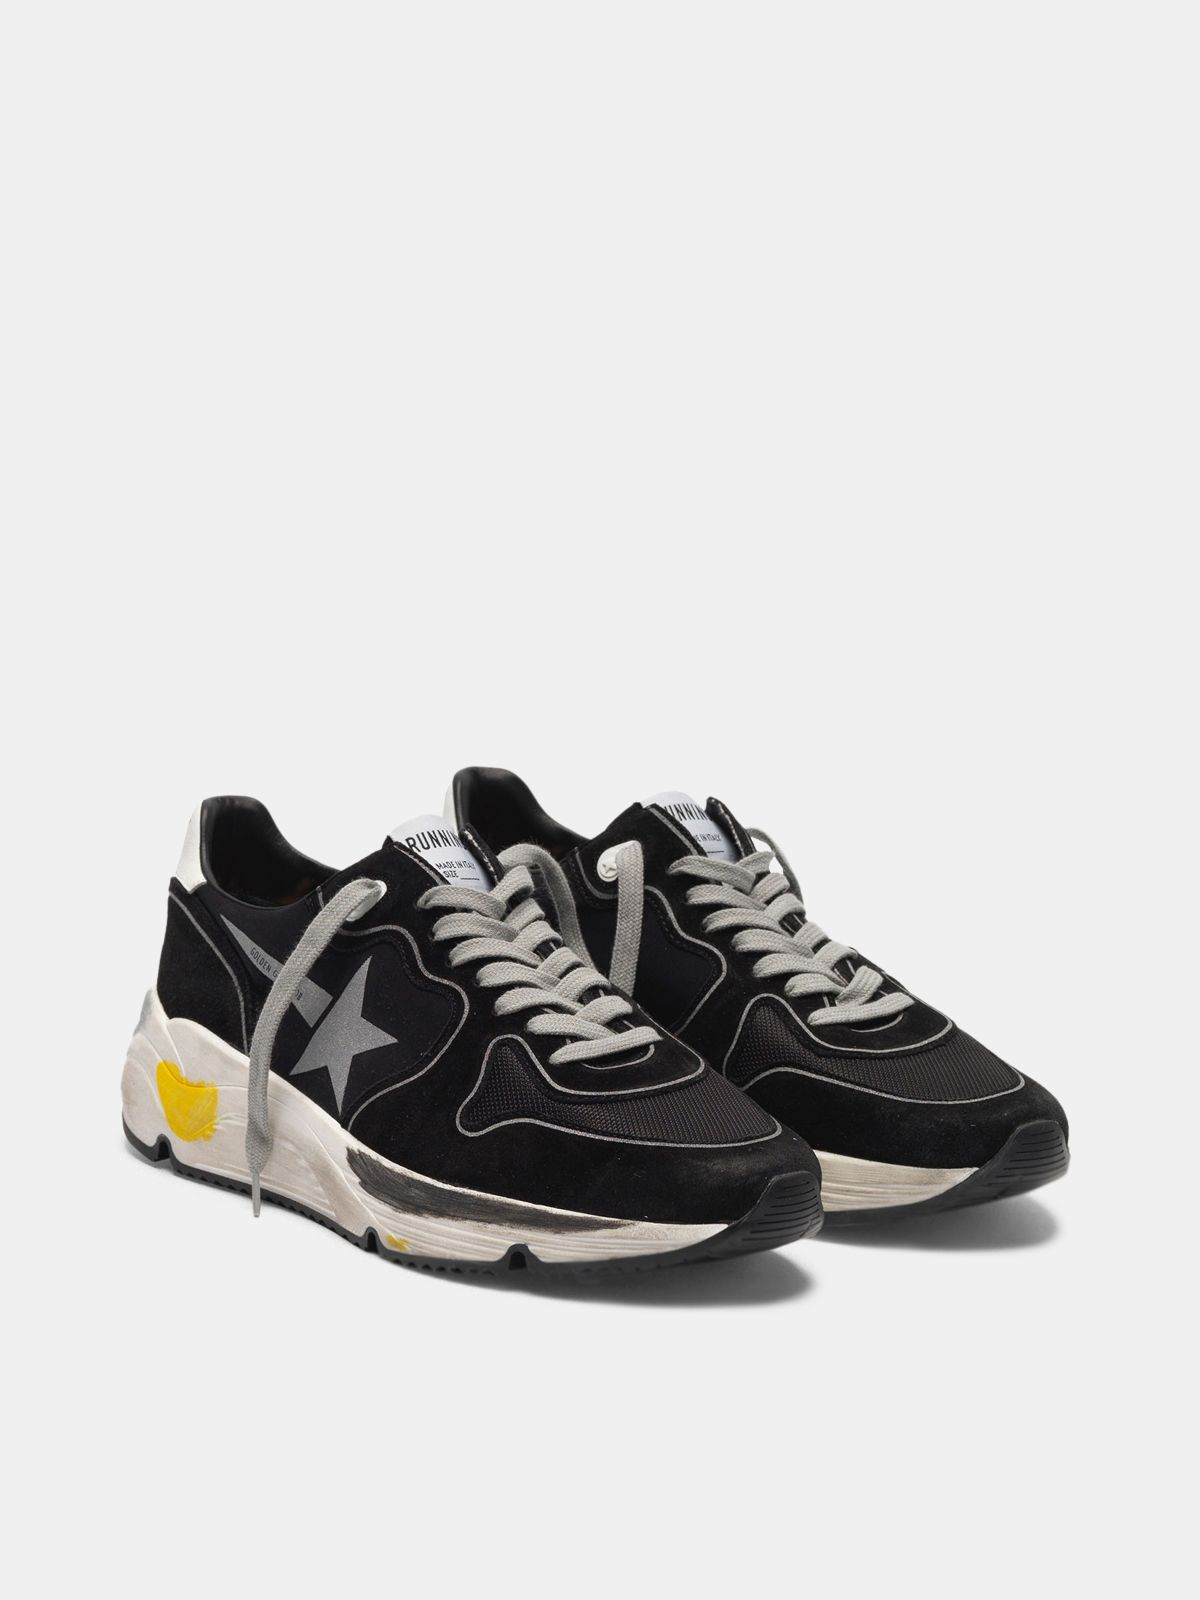 Golden Goose - Running Sole sneakers in leather and Lycra with silver star in